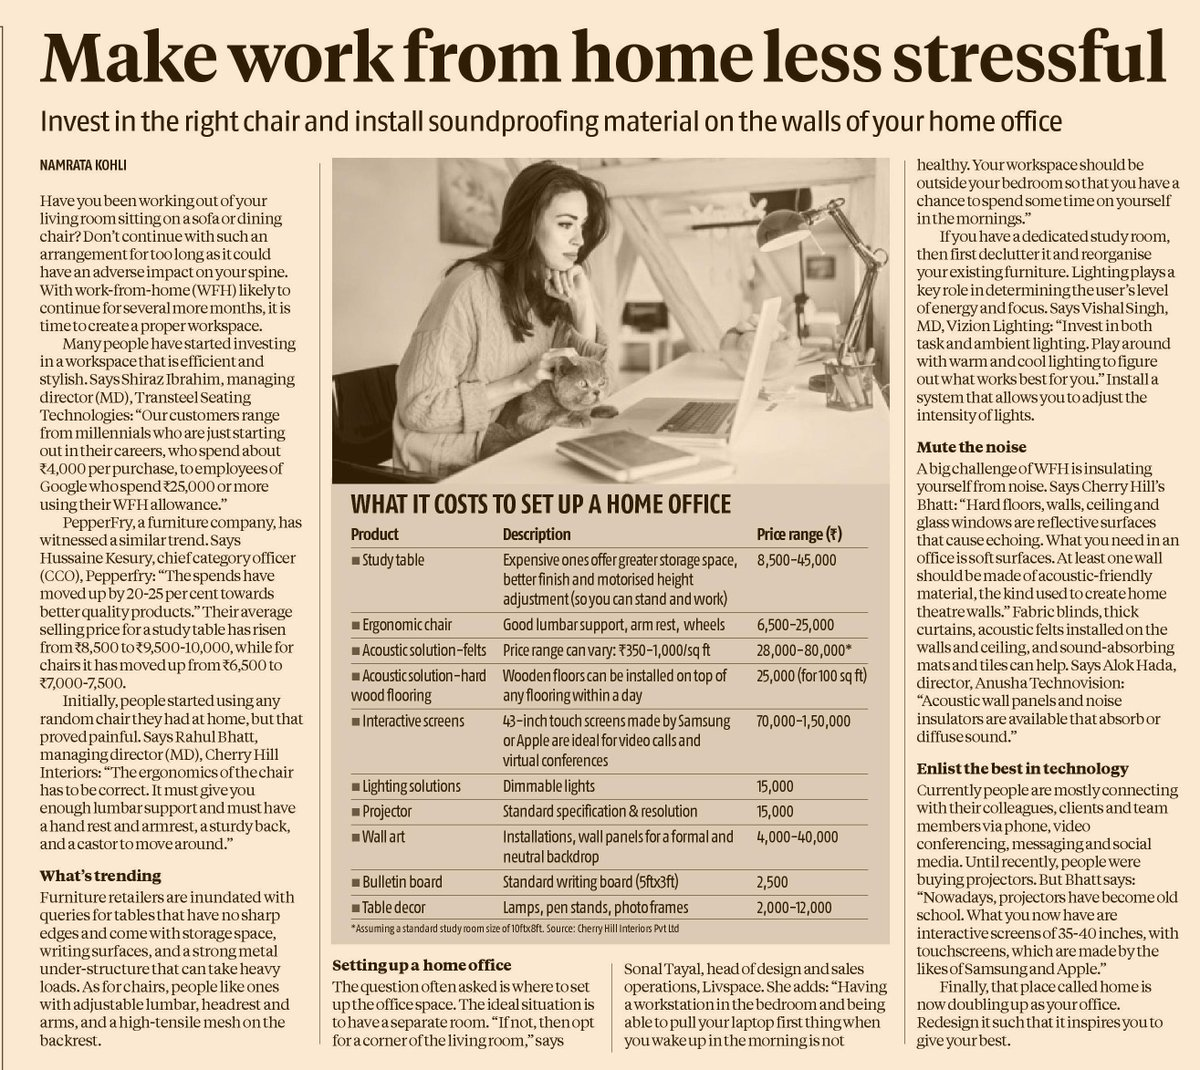 #BusinessStandard #workingfromhome #homeoffice #home  BS Personal Finance: Setting Up Your Home Office  https://t.co/Vllf75lXrw https://t.co/x8LprxN4hK